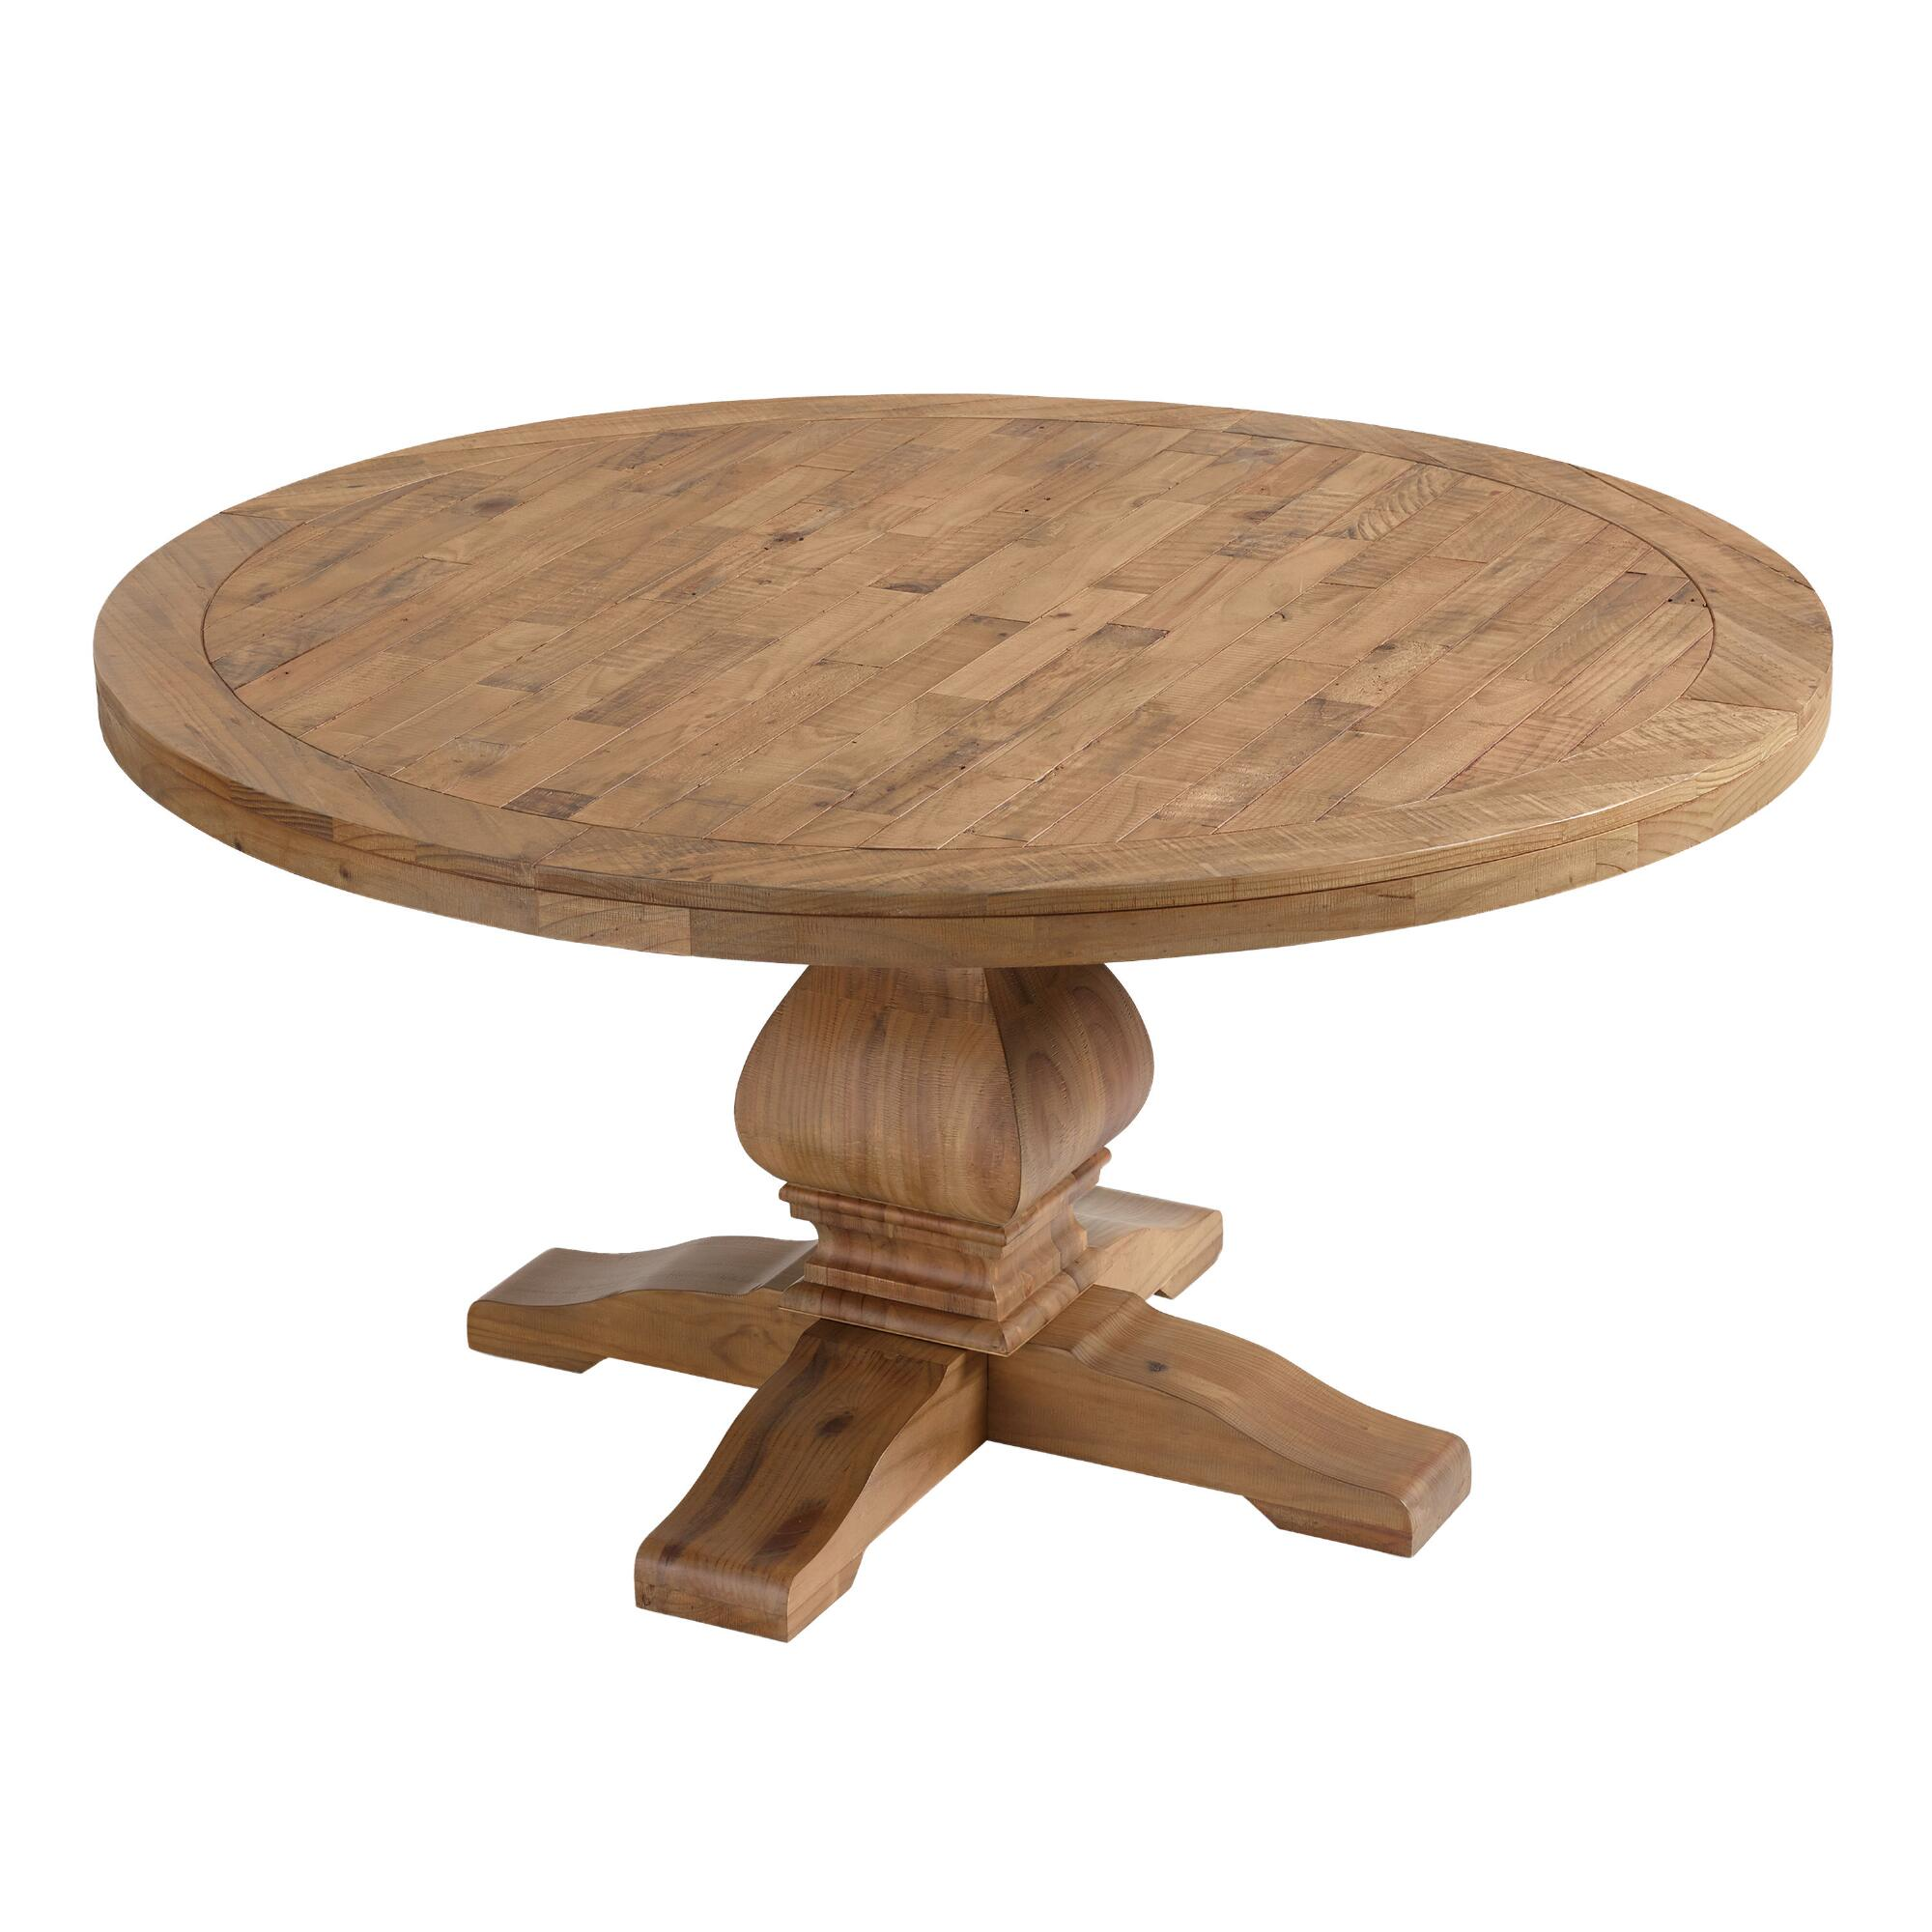 AFFORDABLE HOME DECOR IDEAS; FARMHOUSE WOODEN ROUND KITCHEN TABLE